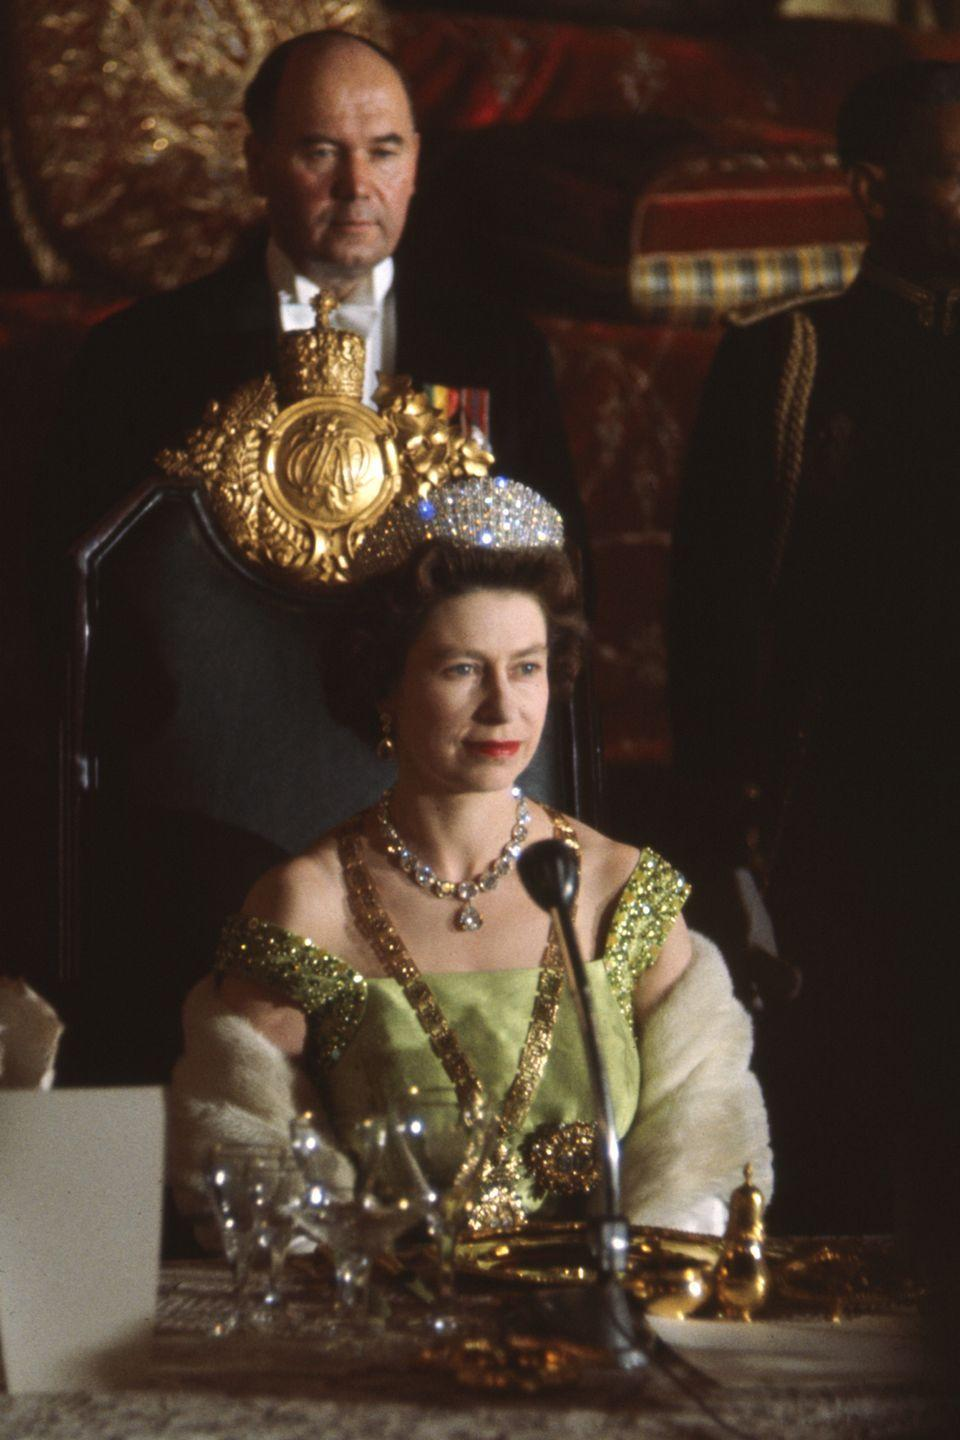 <p>In a green gown and a stunning array of personal jewels. She also wore ornaments signifying Ethiopia's highest order at the Great Throne Hall of the Menelik Palace in Addis Ababa, Ethiopia.</p>